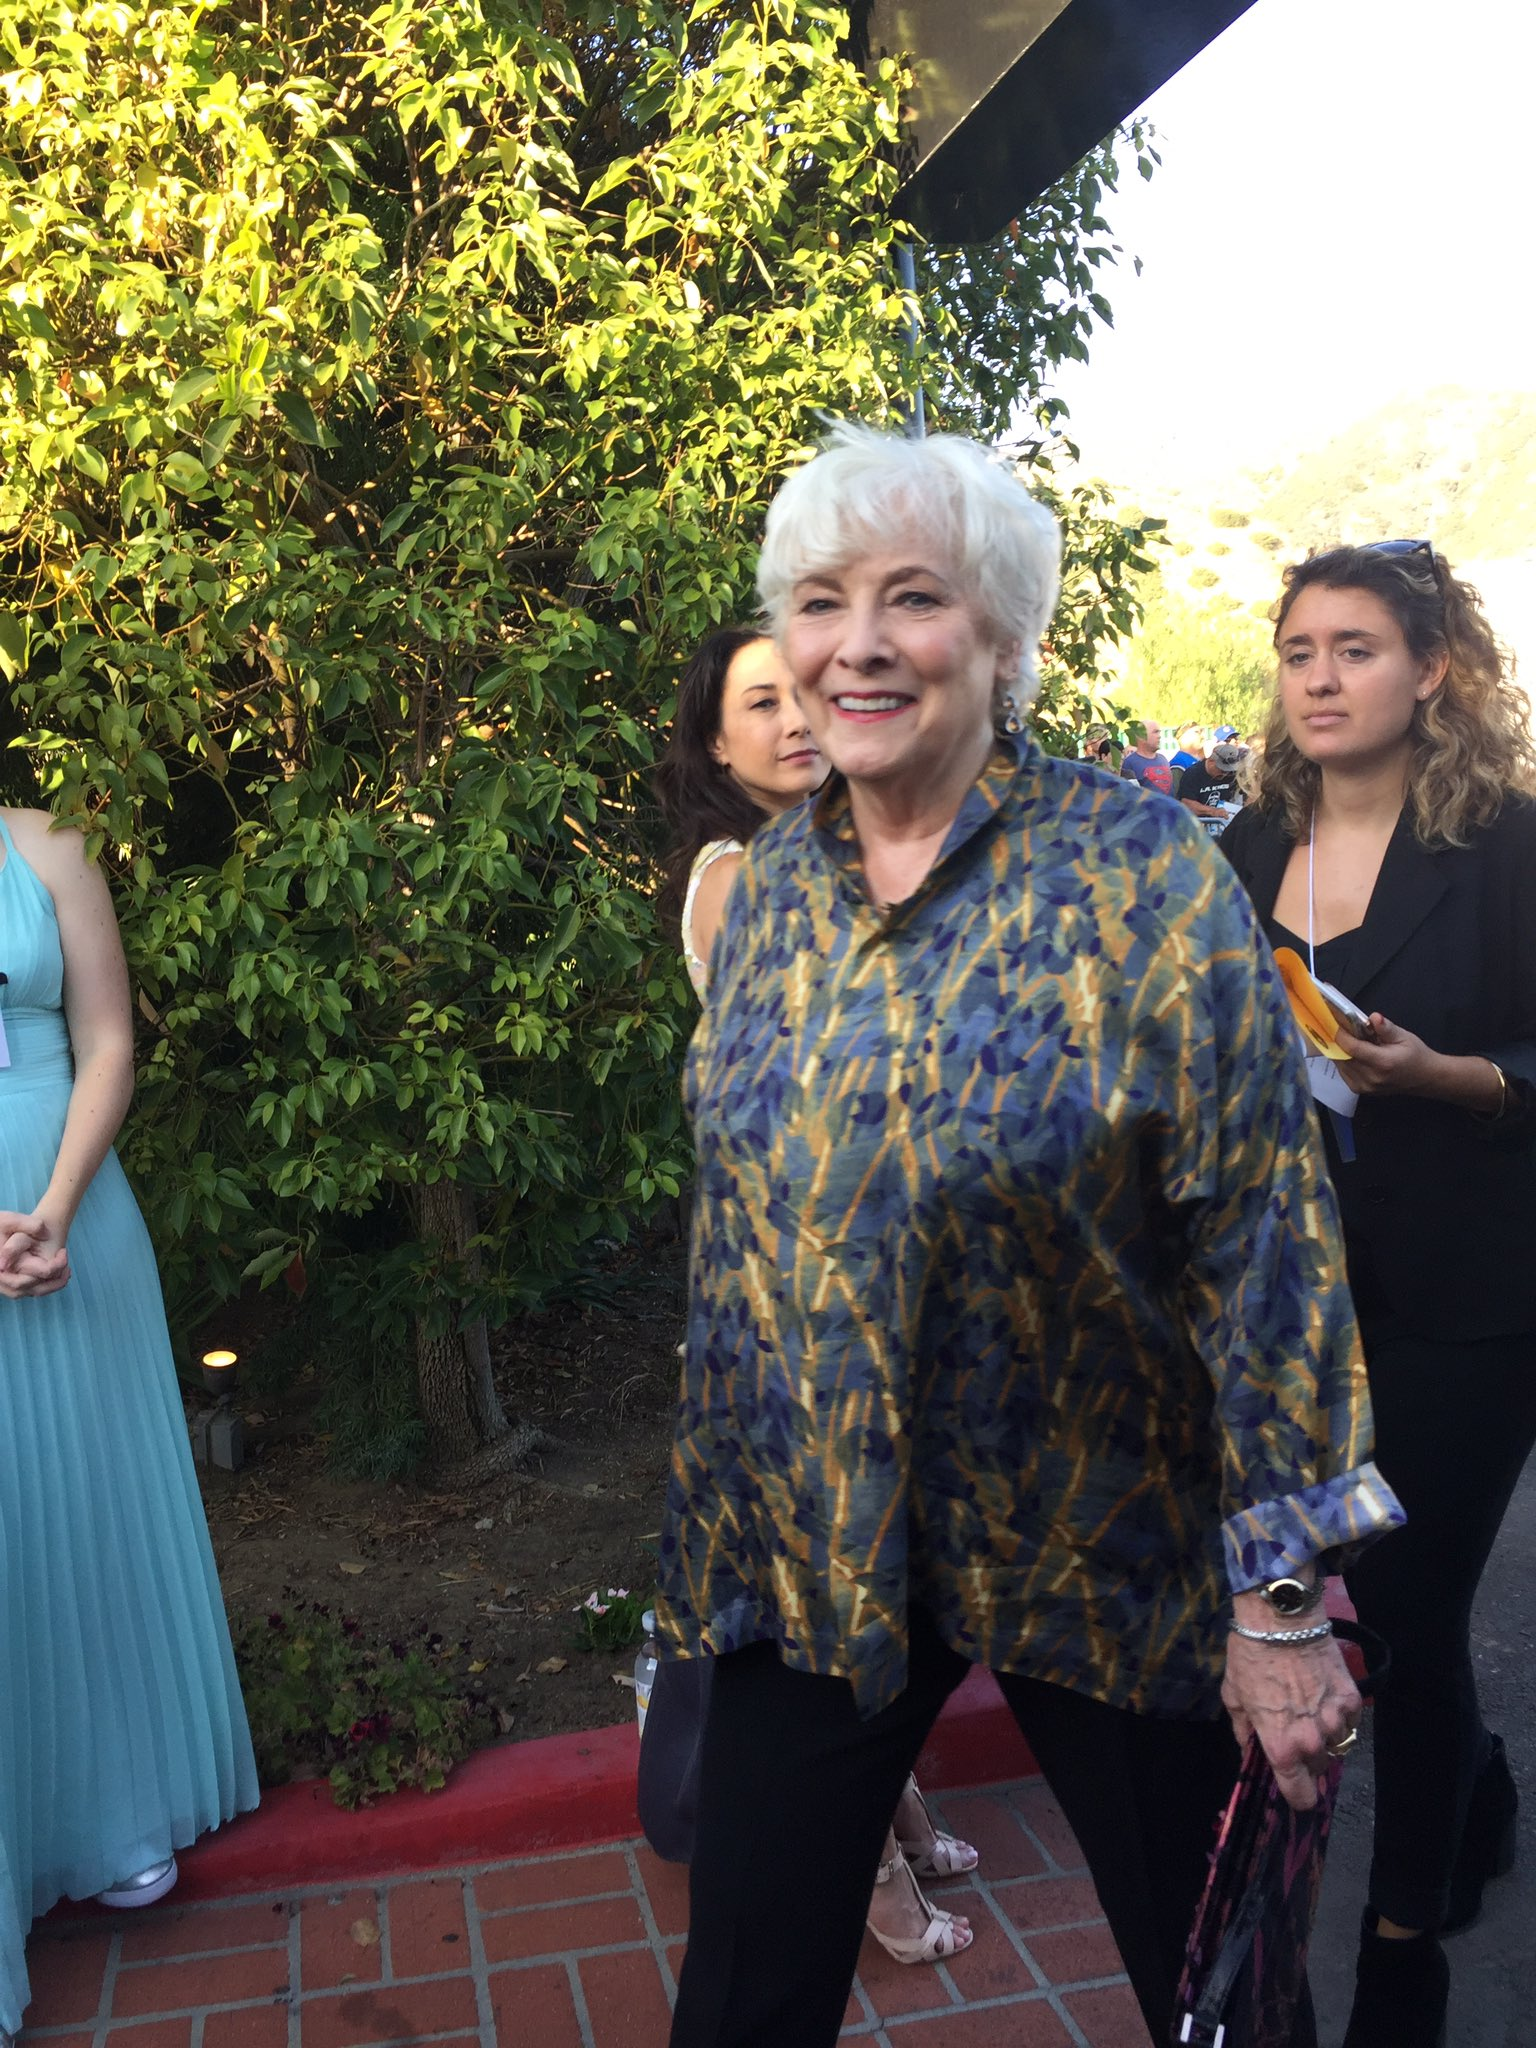 We just got #BettyBuckley here at the #SaturnAwards!! https://t.co/9tL0IzECwS